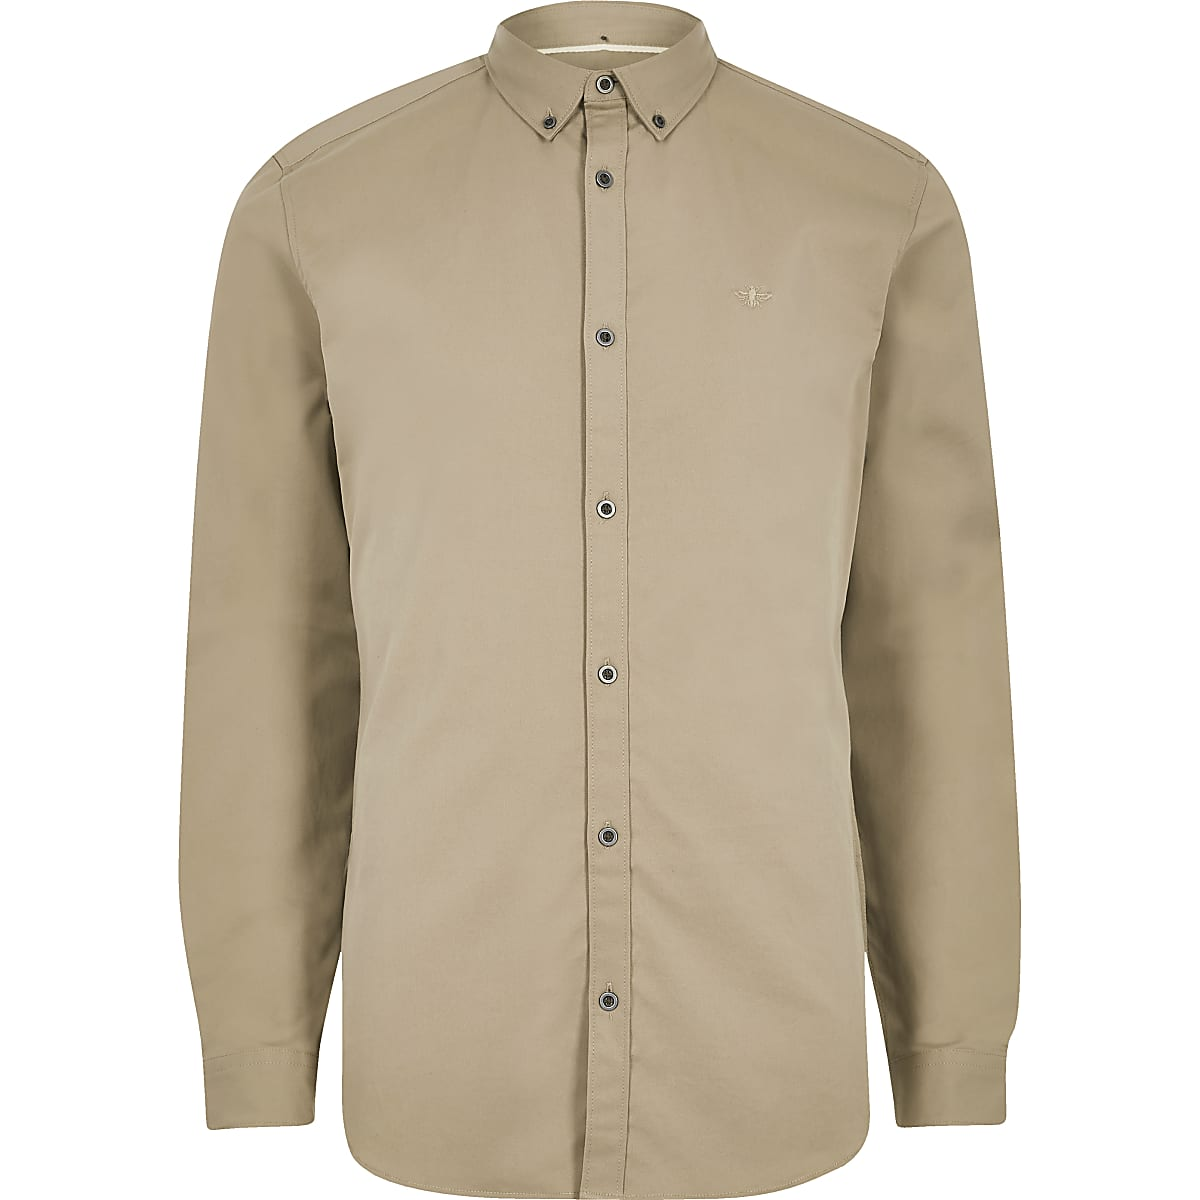 Tan wasp embroidery stretch long sleeve shirt